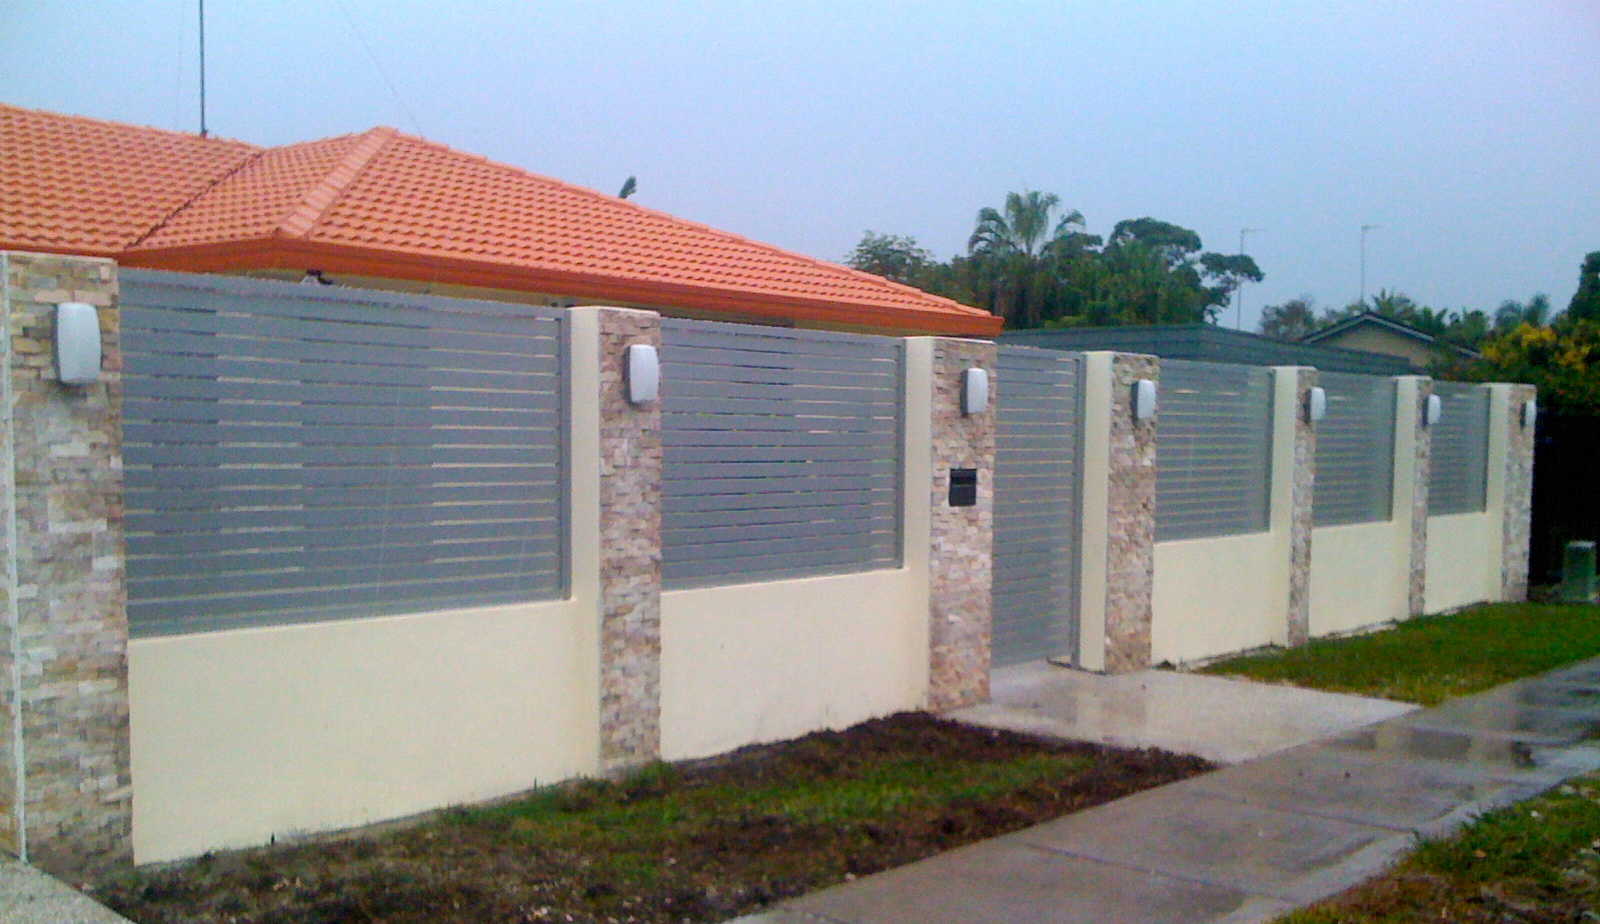 Horizontal slatted panels in front fence